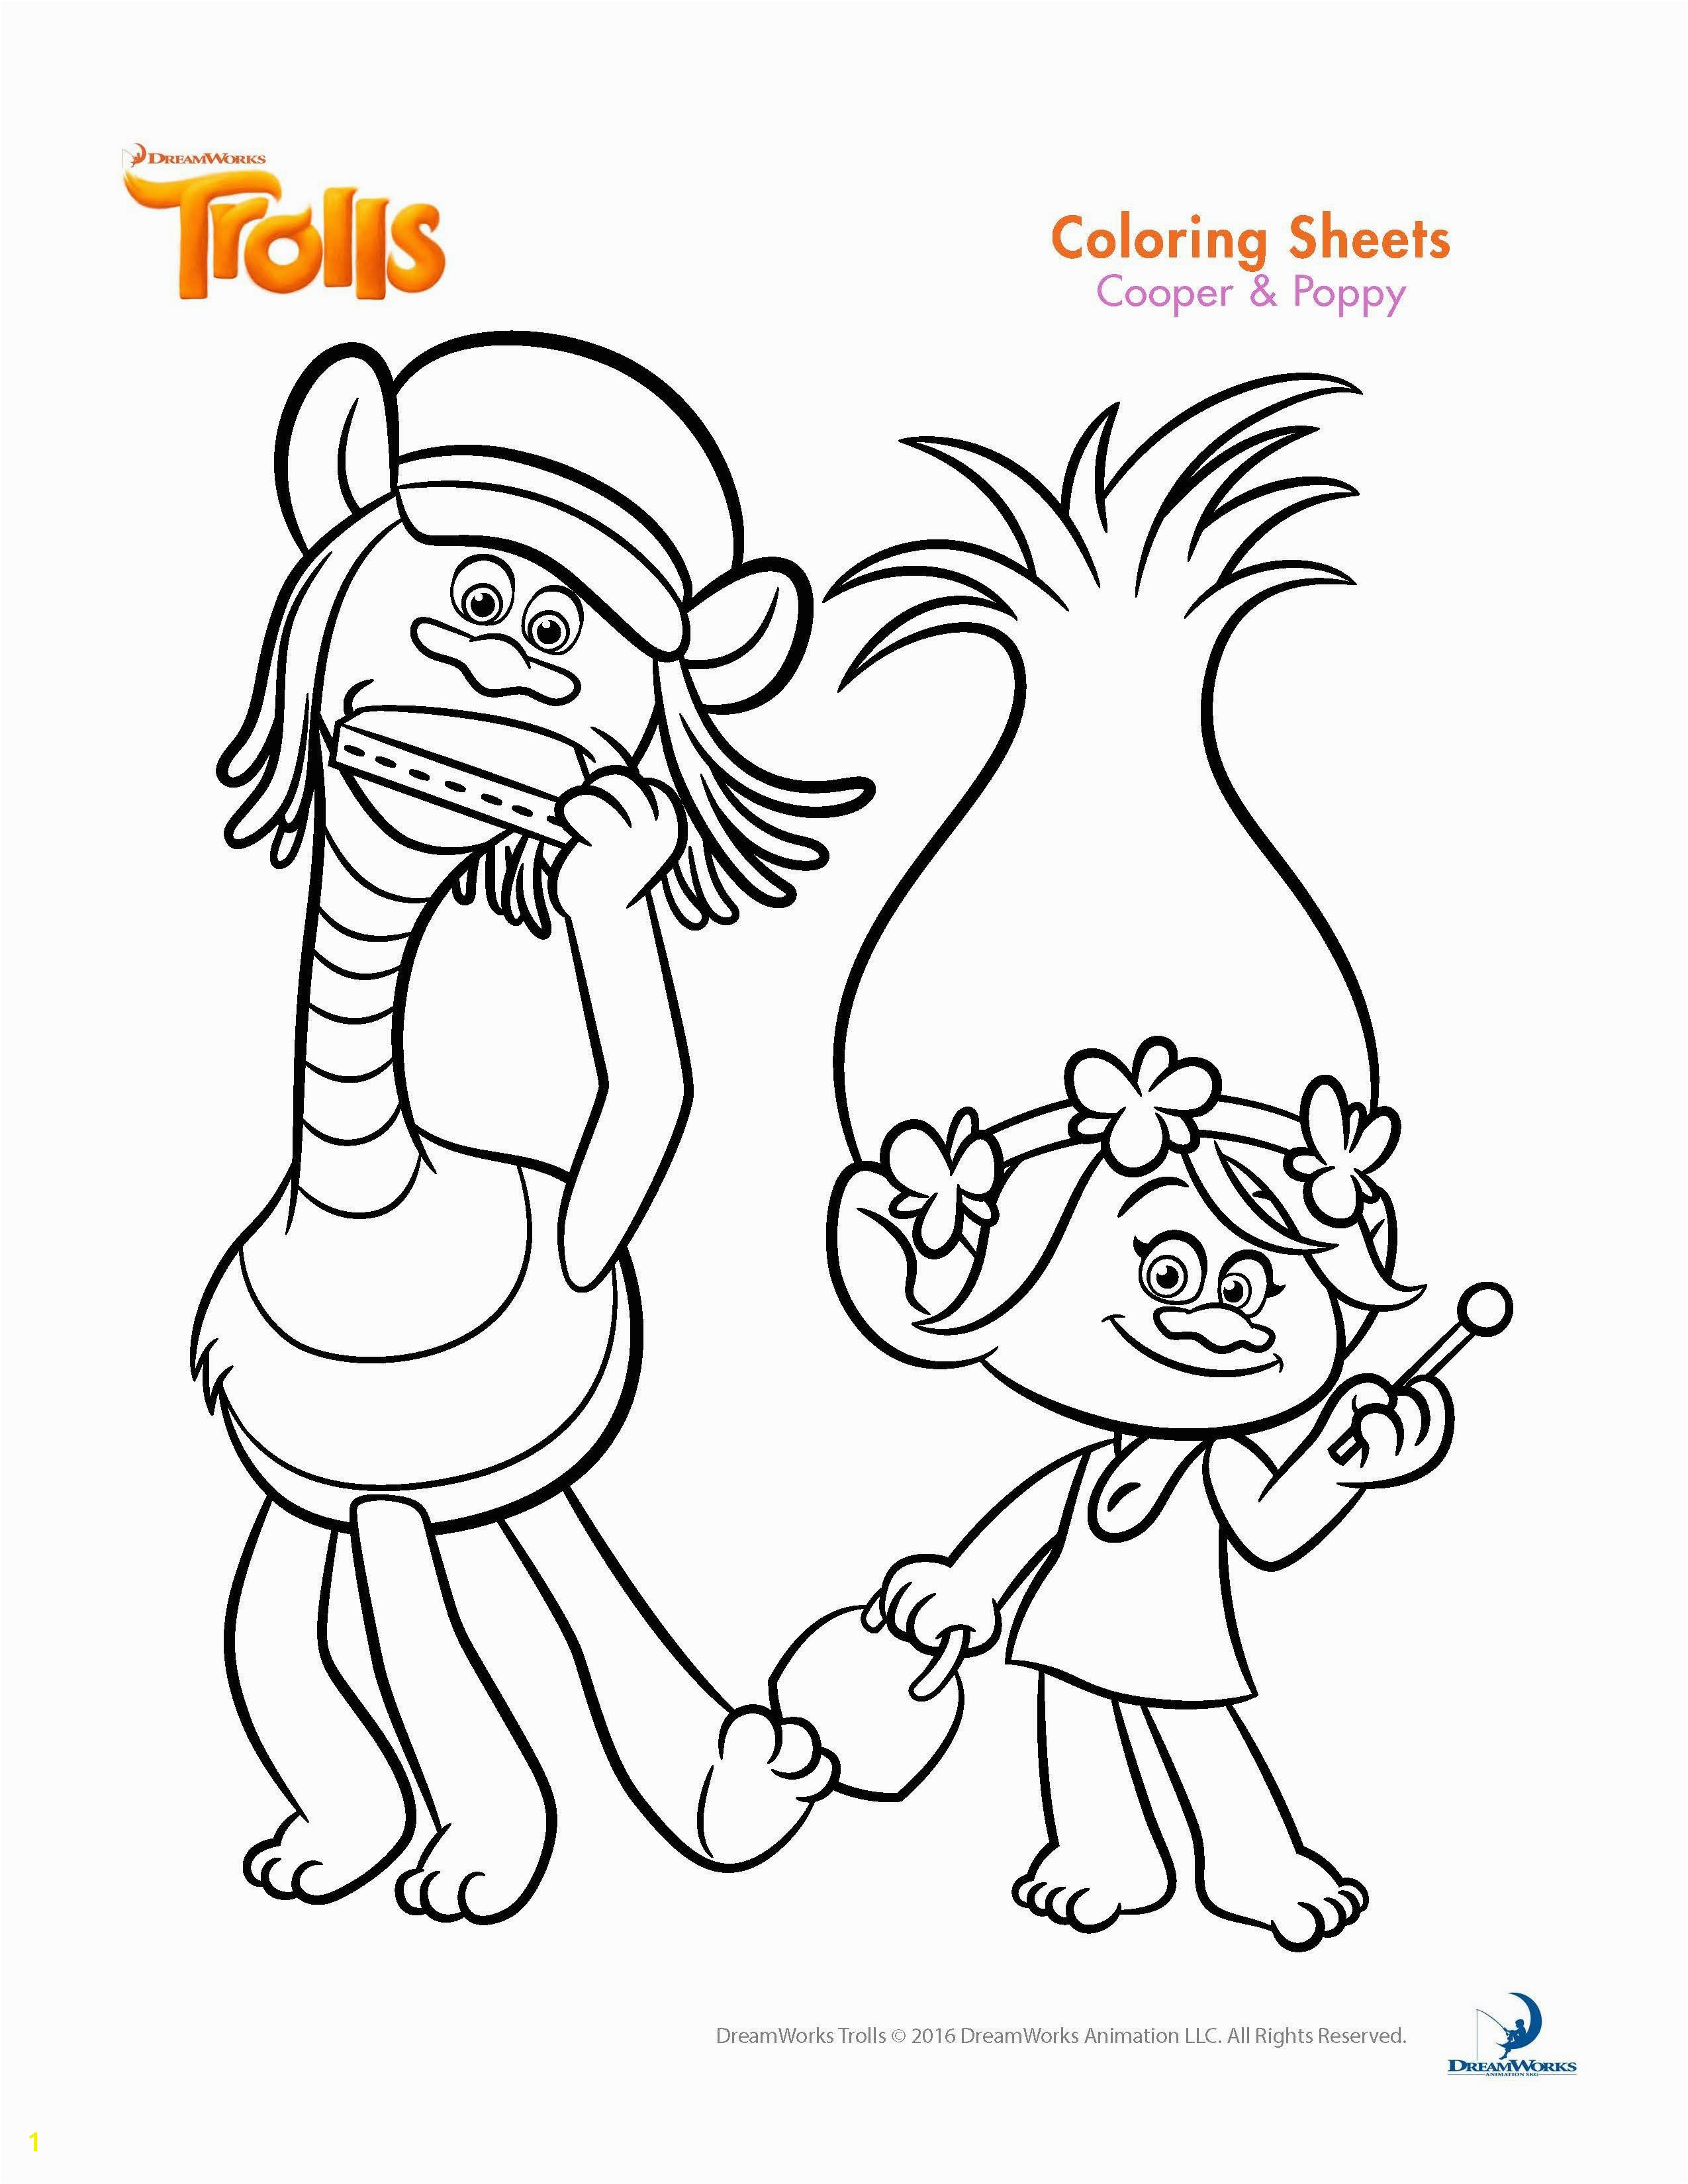 Trolls Poppy Coloring Pages printables Faces Printable Coloring Pages Inspirational Trolls Coloring Sheets